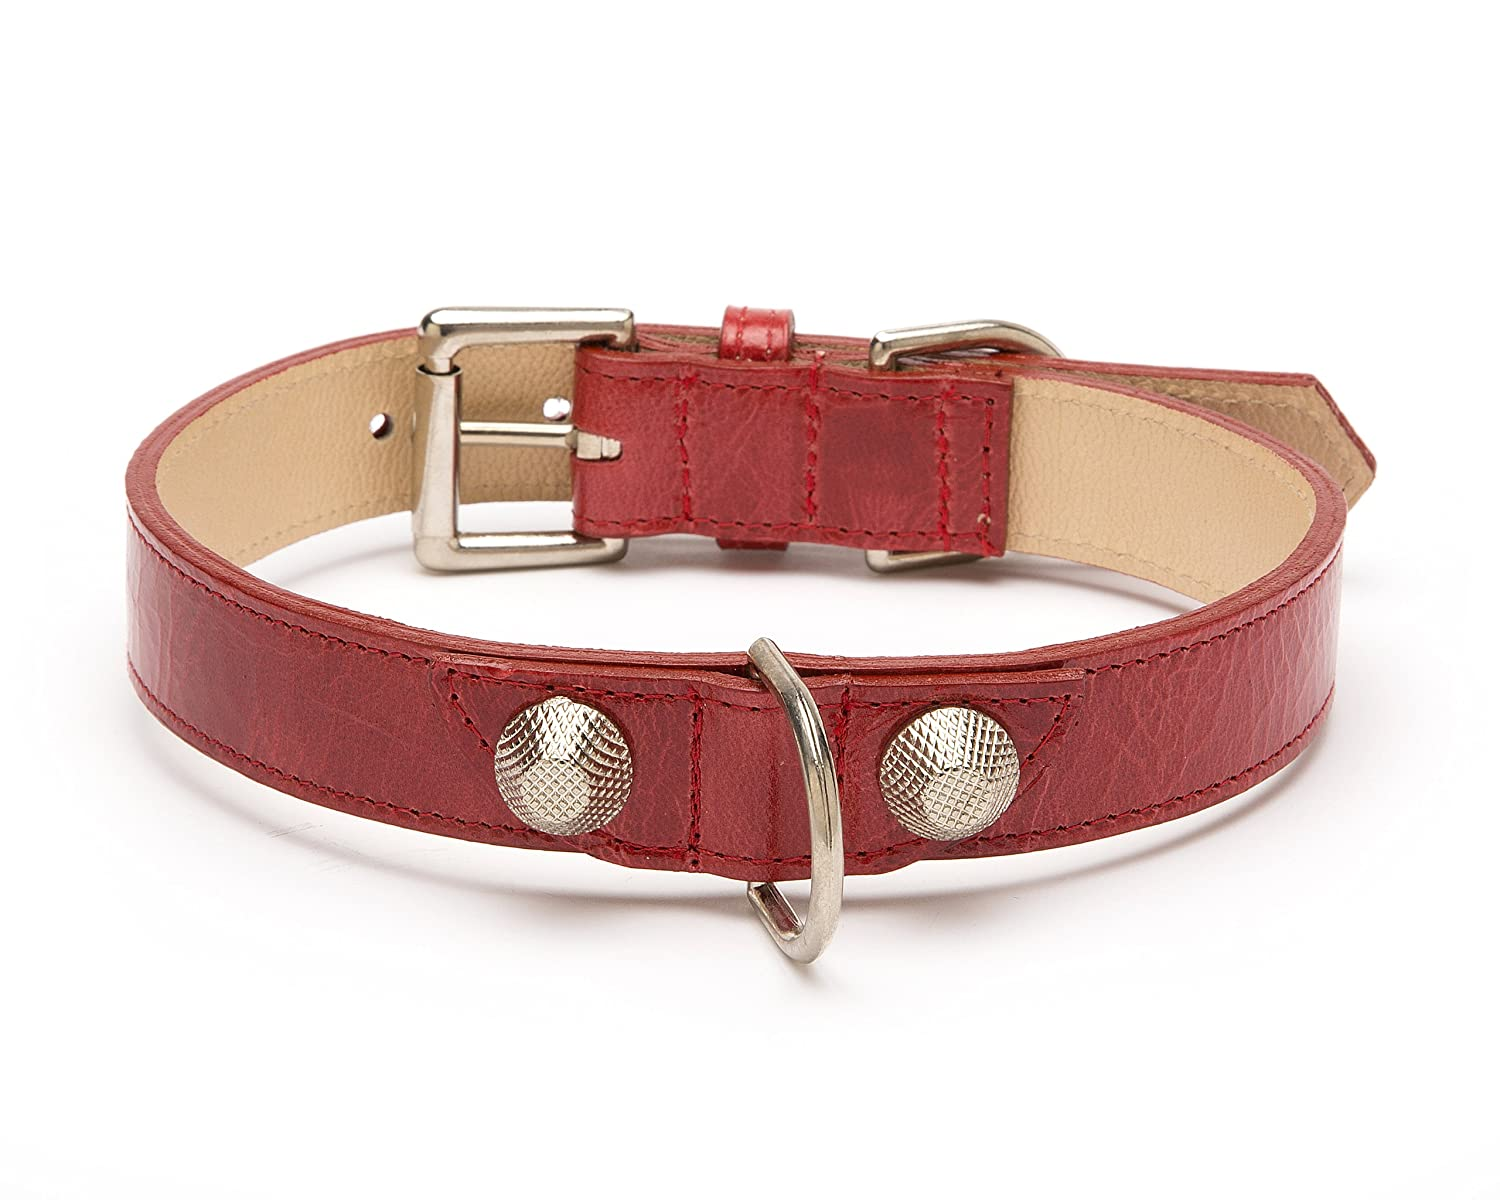 Balencioochee Straight Dog Collar, Rivets, Extra Small Size 8, Red with Silver Rivets